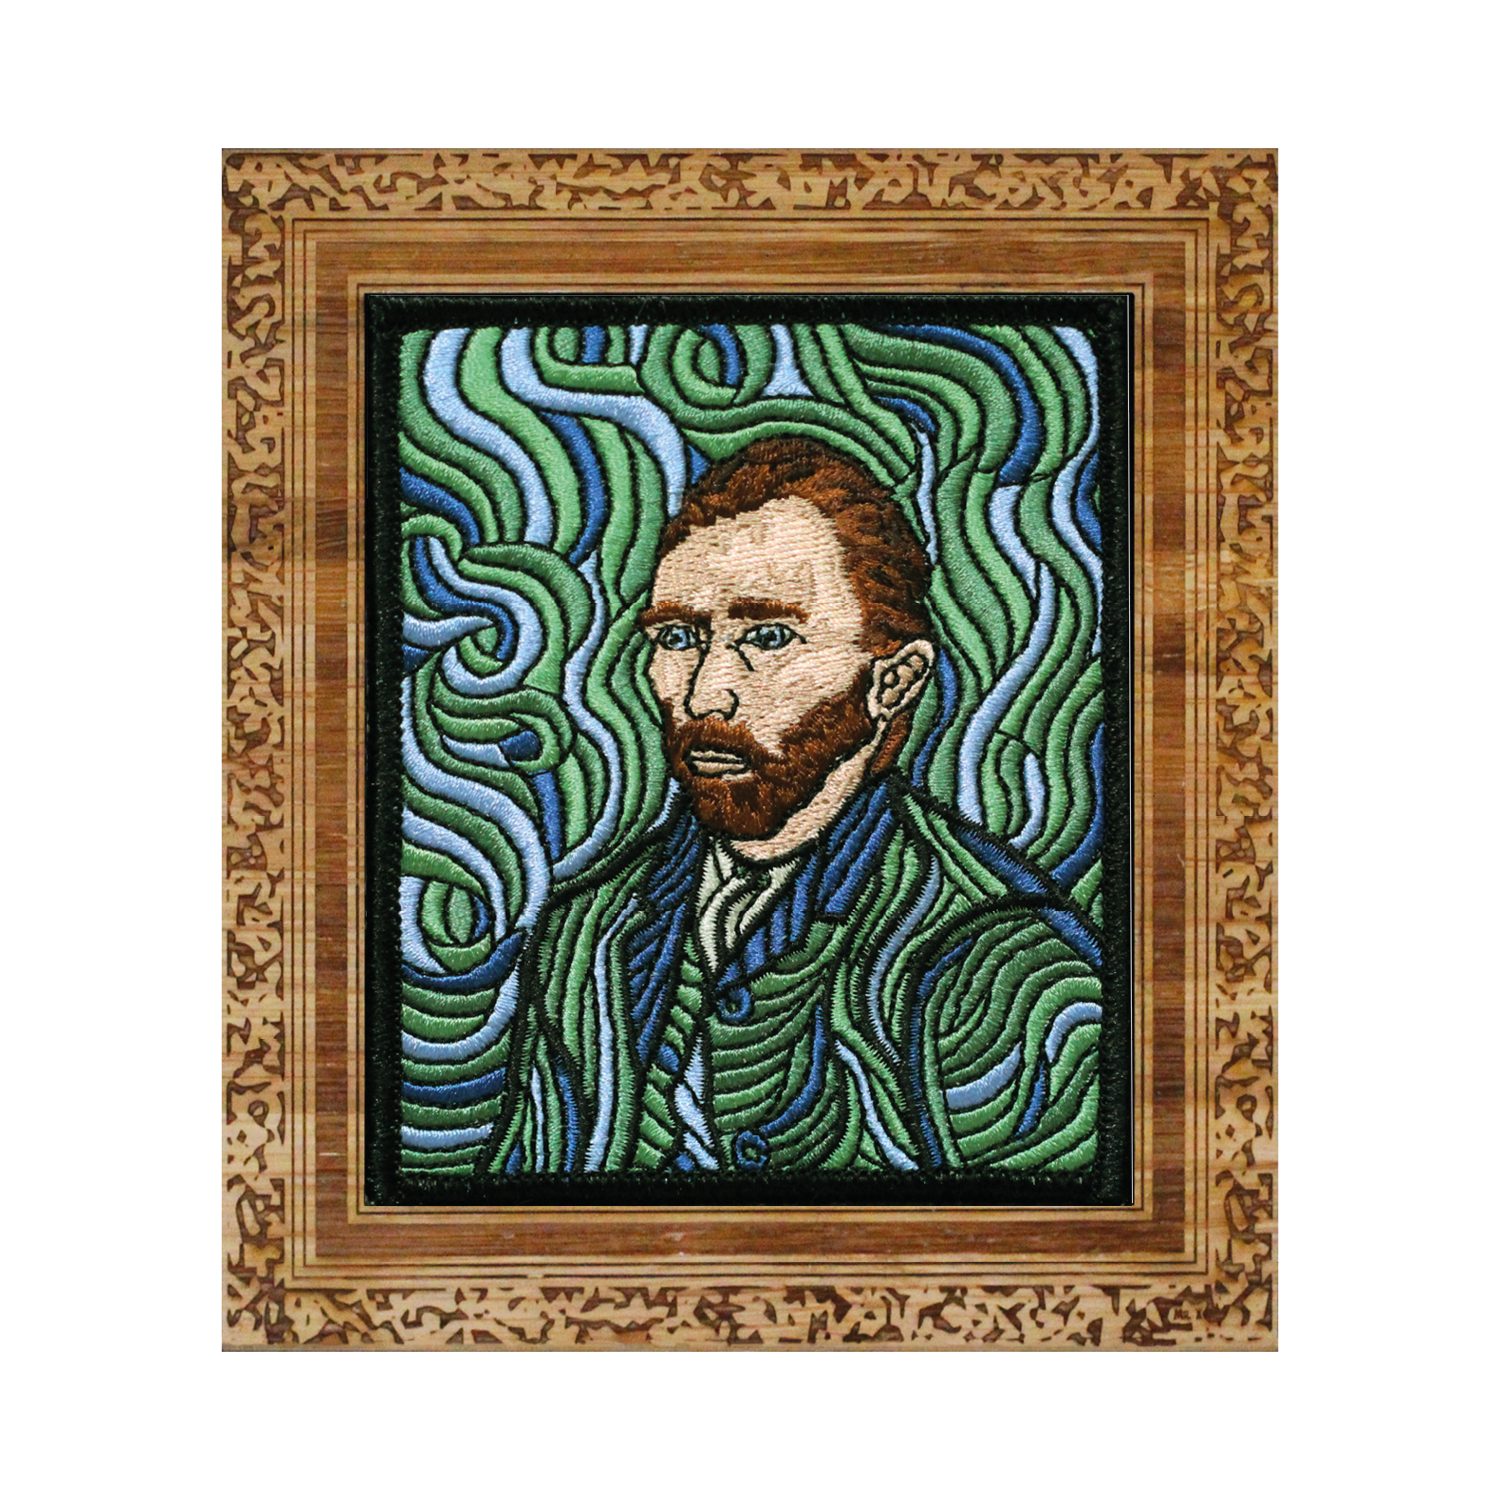 Vincent Van Gogh - Self-Portrait Patch